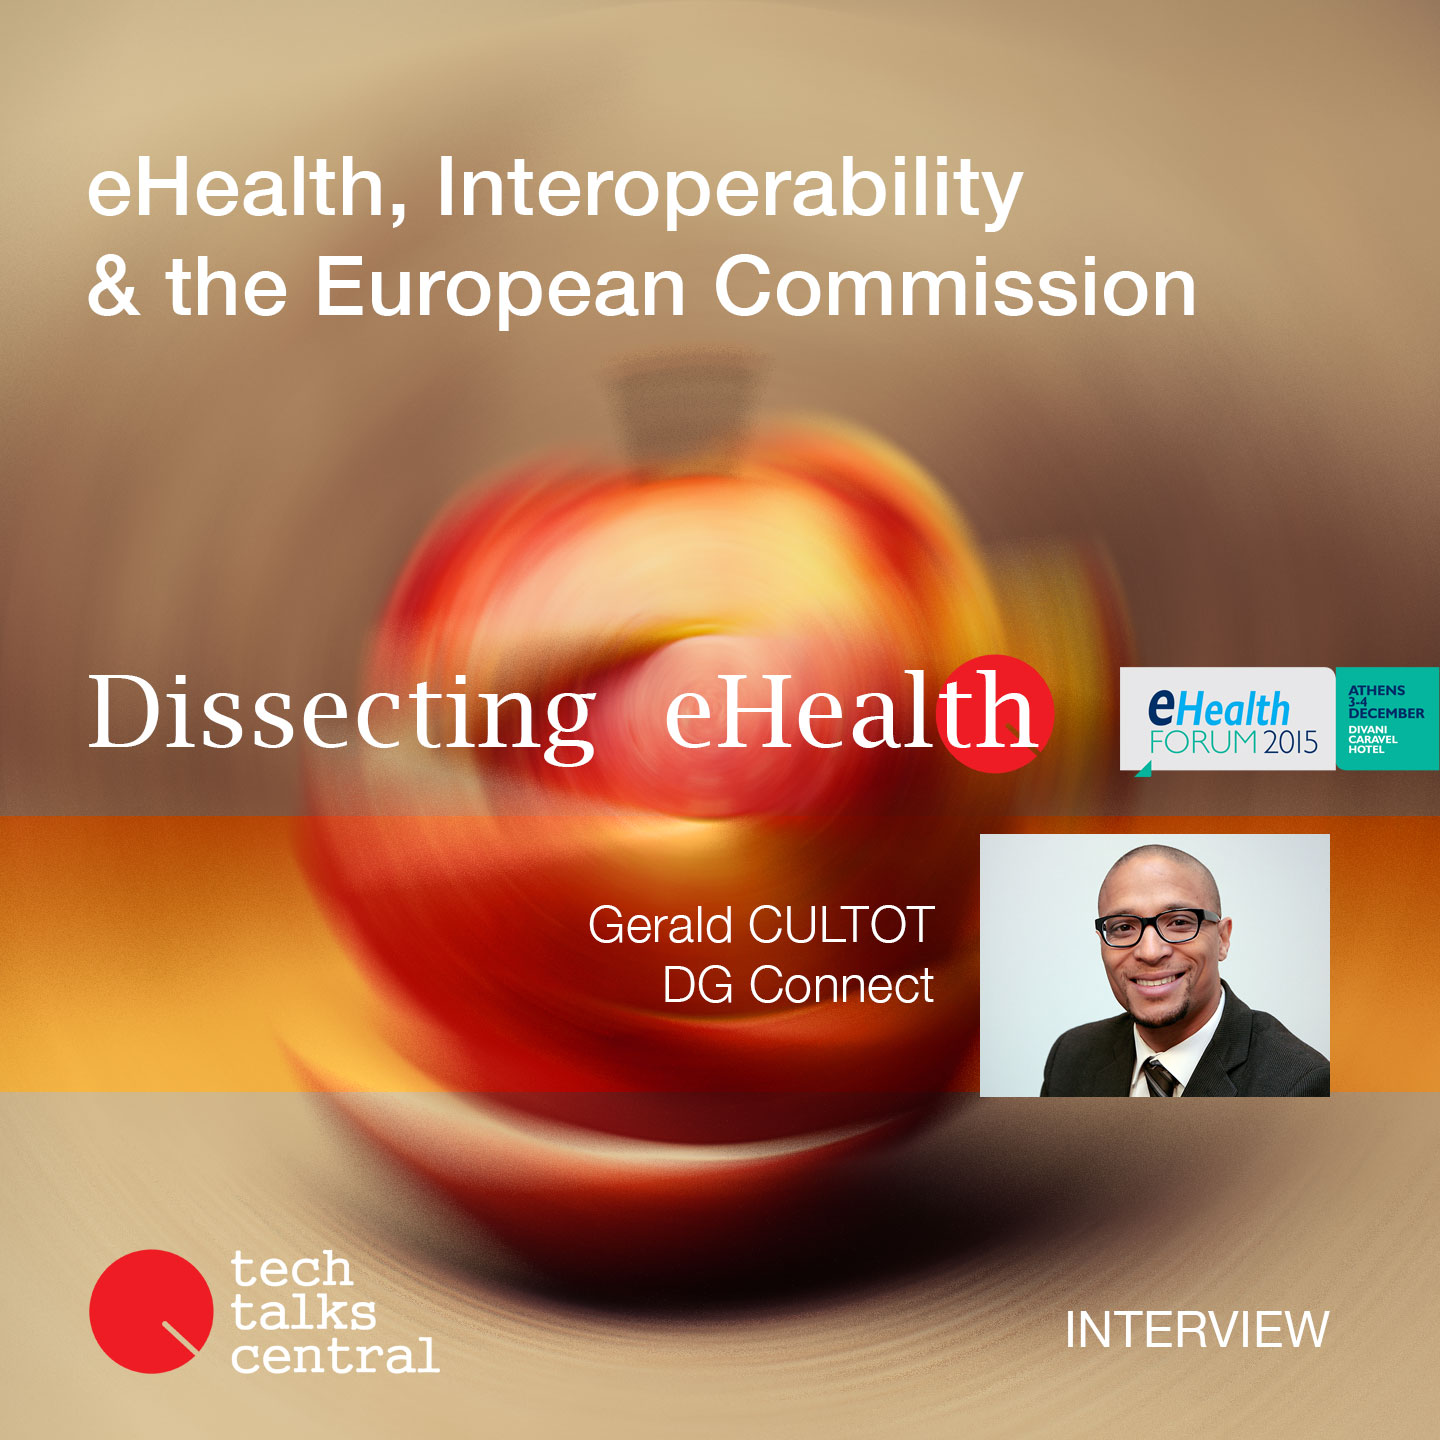 eHealth, Interoperability & the European Commission, George Cultot